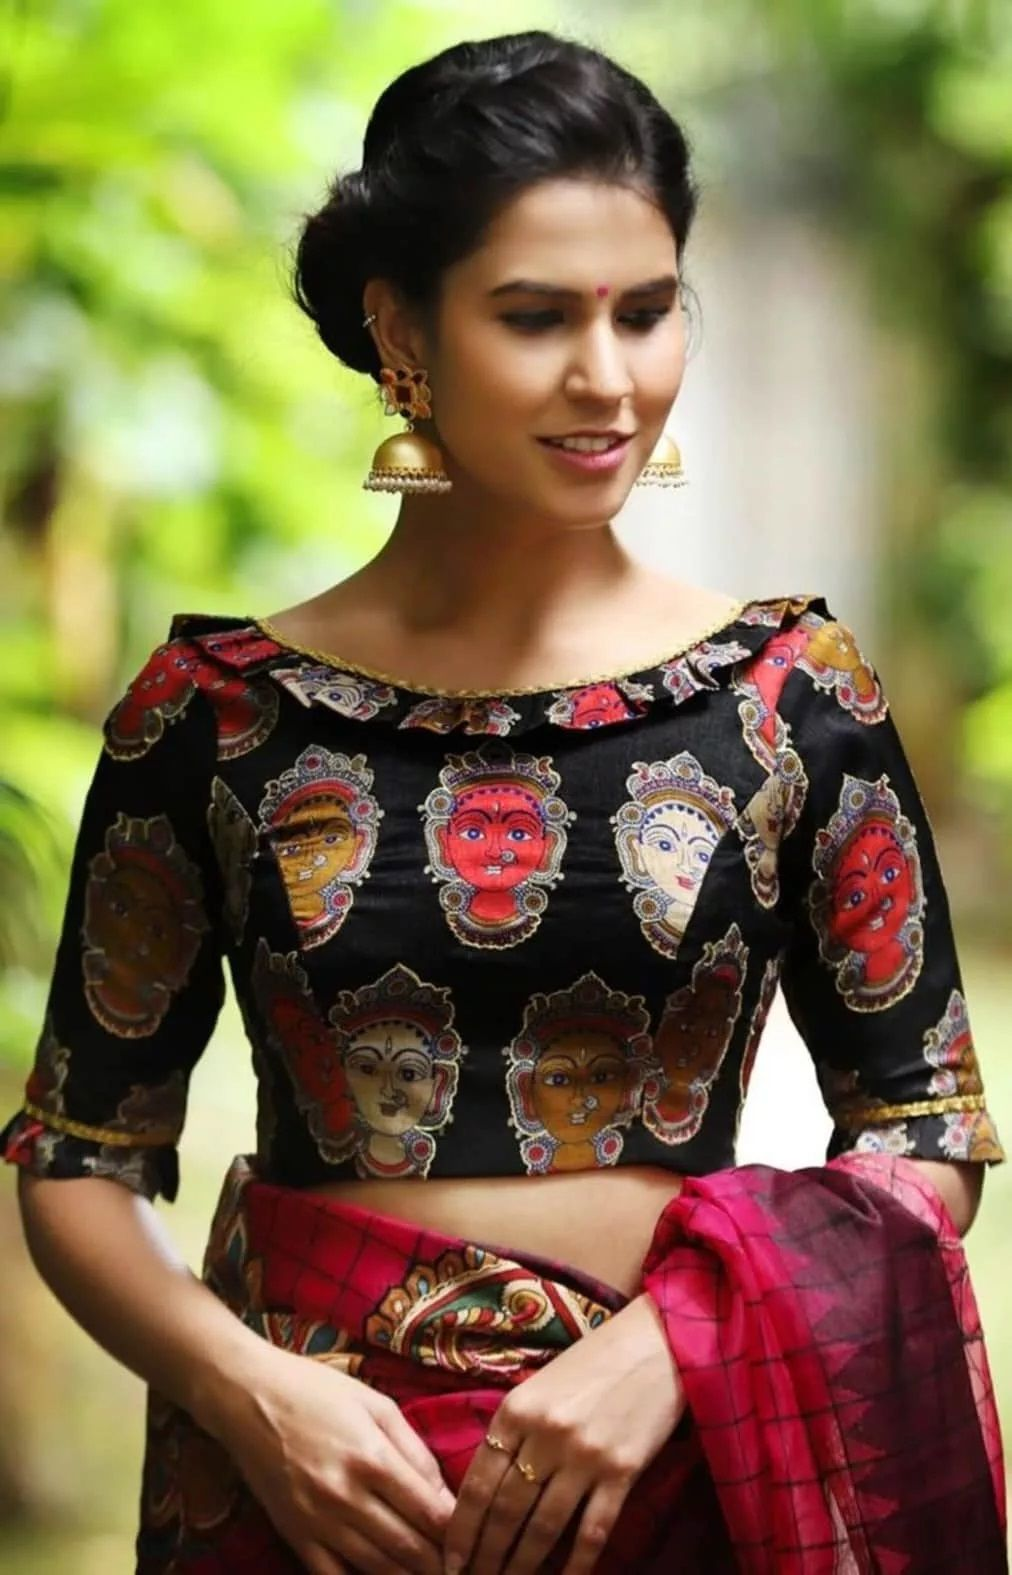 Wedding Blouse Designs - Black boat neck blouse with artistic face-kind print   #blousedesignslatest